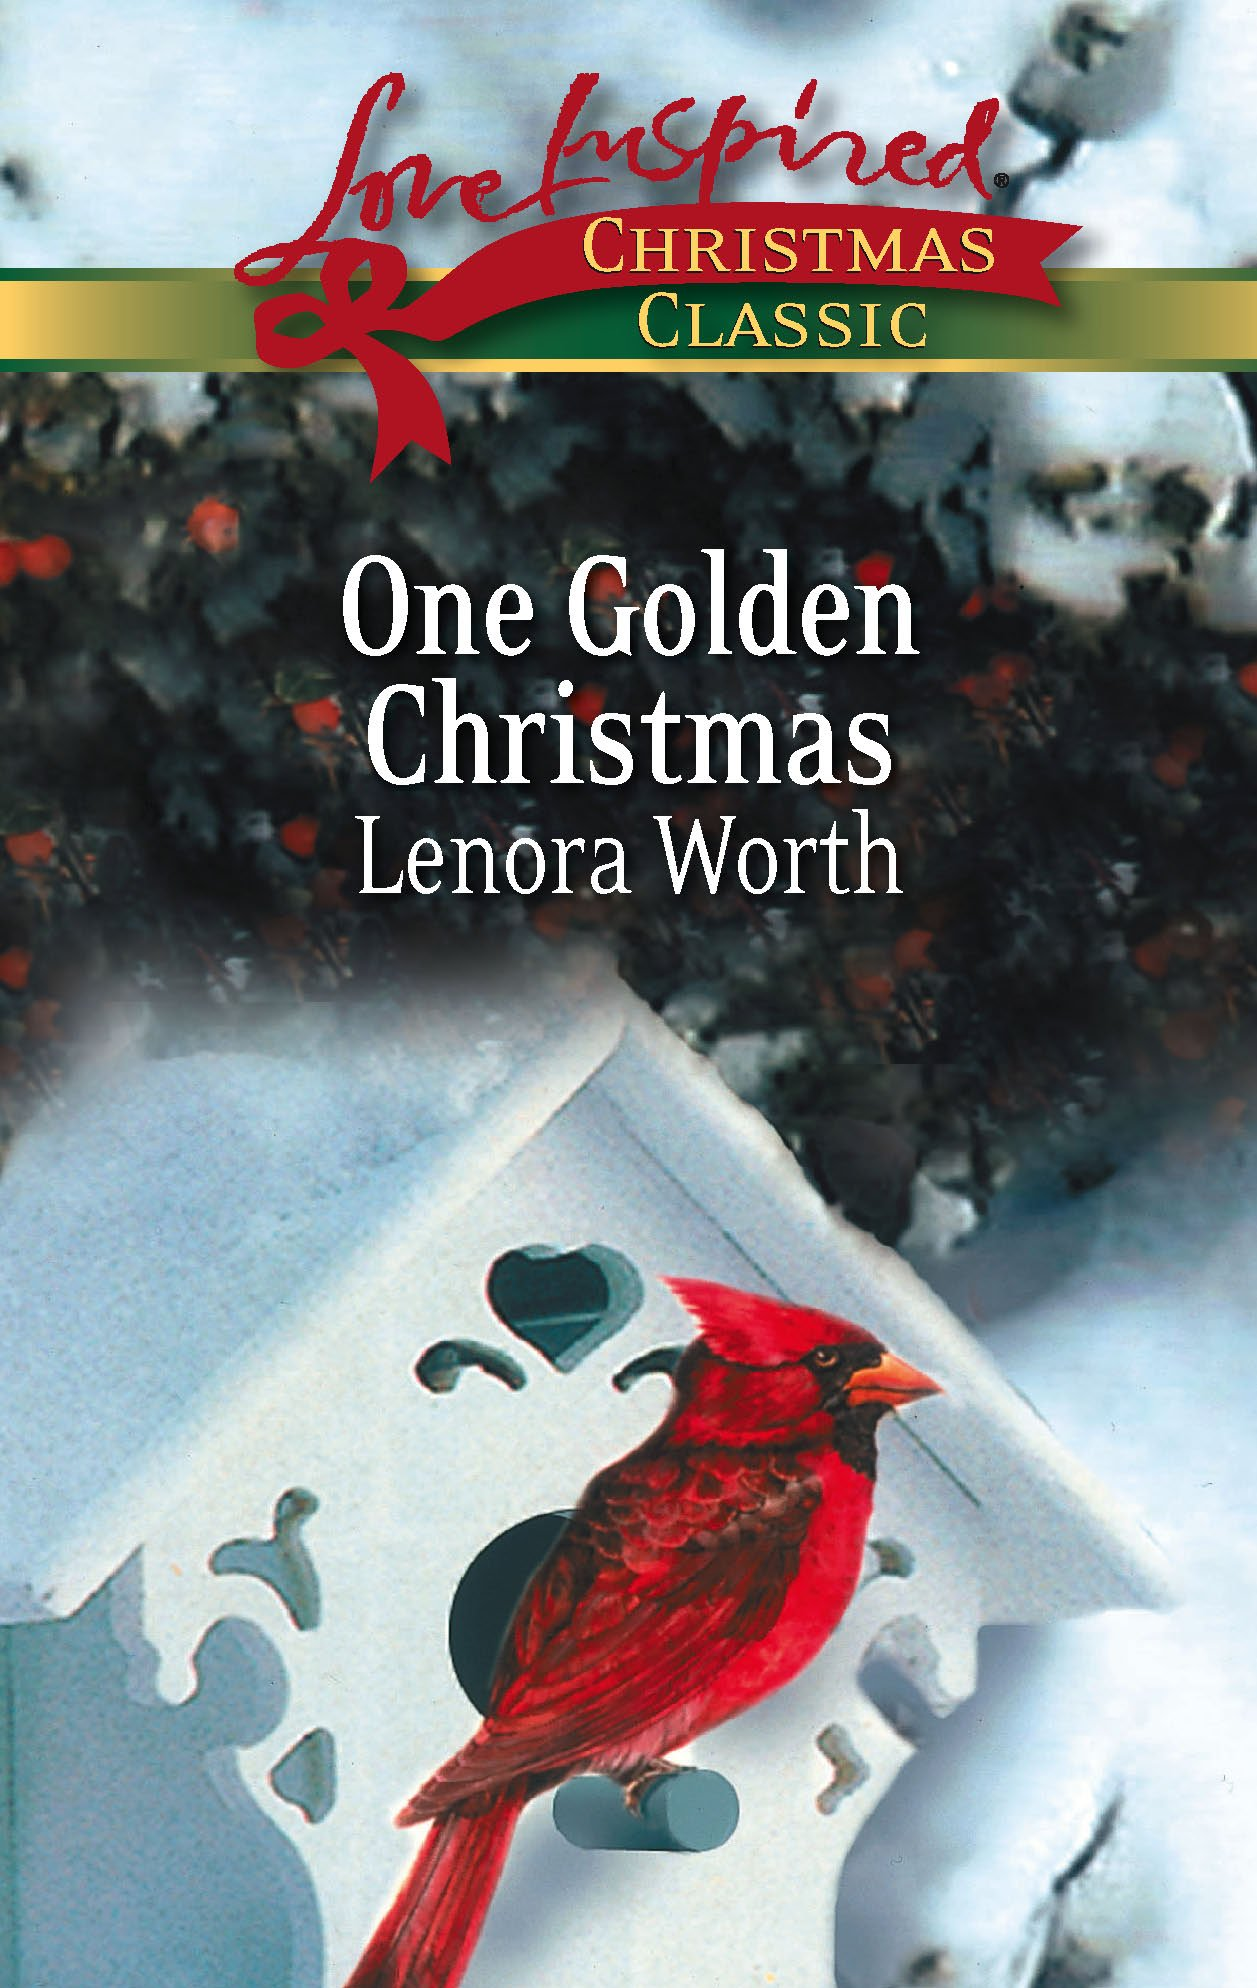 One Golden Christmas (Love Inspired Christmas Classic) pdf